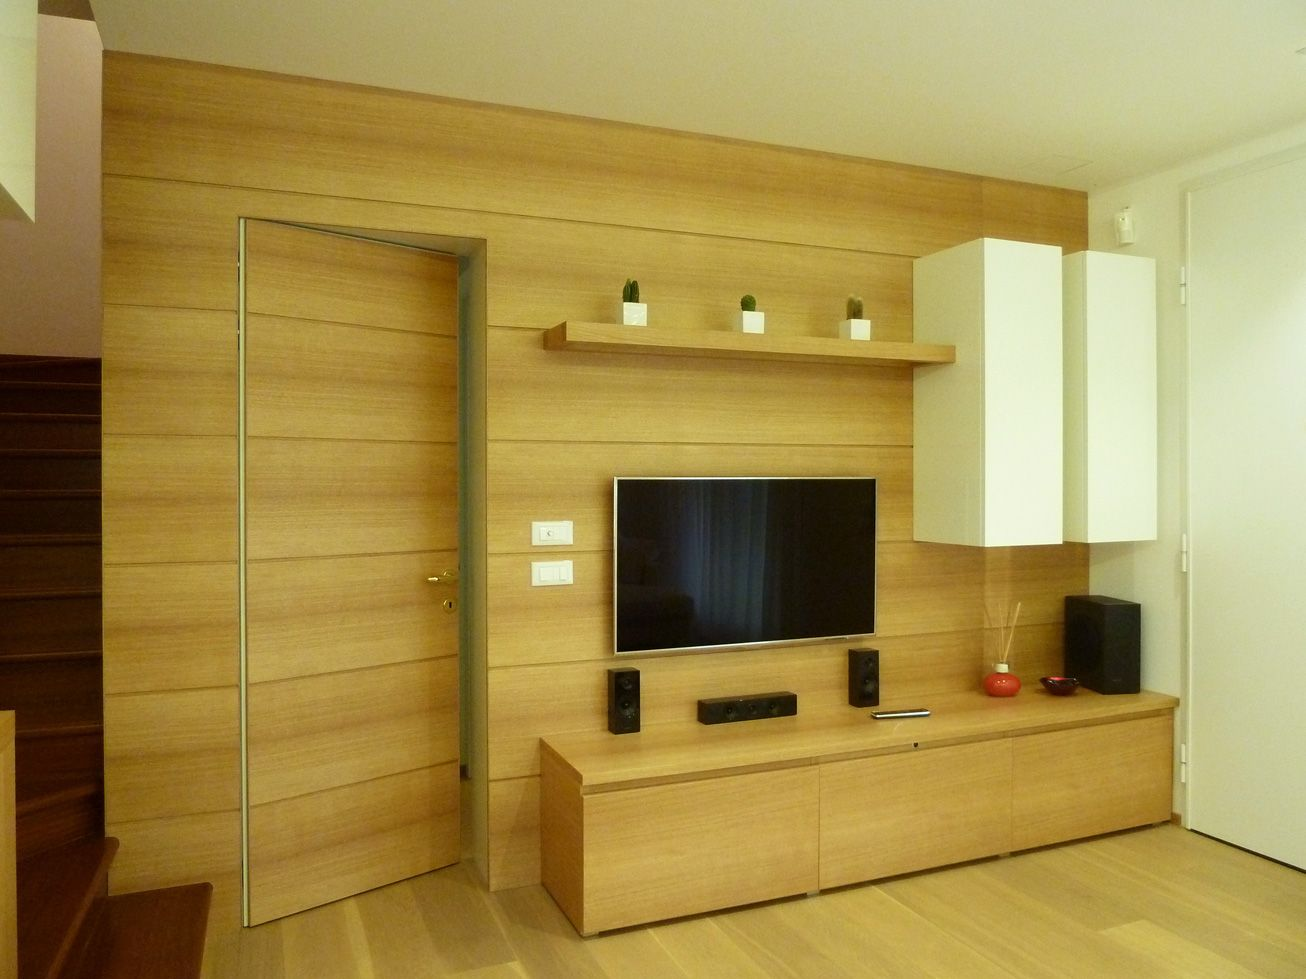 37 best tv walls images on pinterest | tv walls, home and architecture